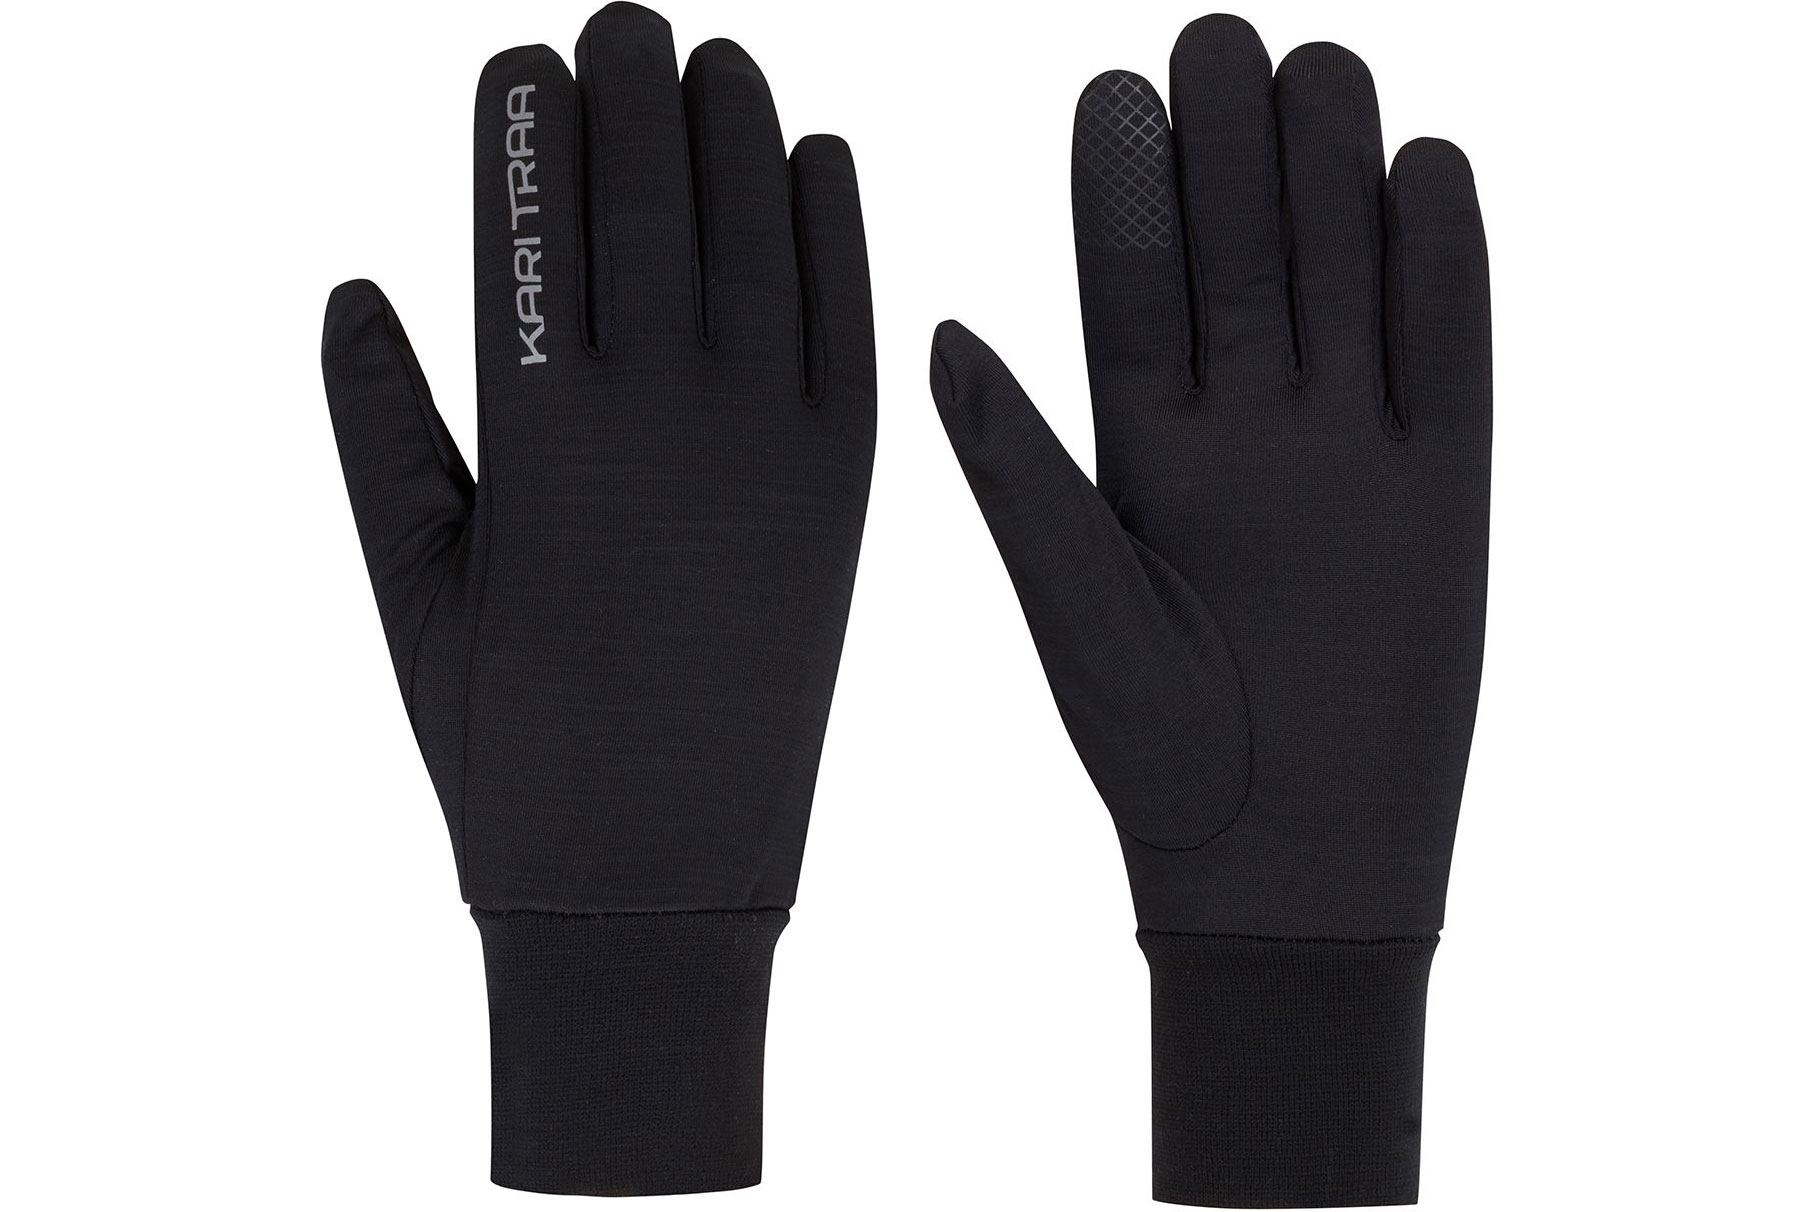 Kari Traa women's gloves